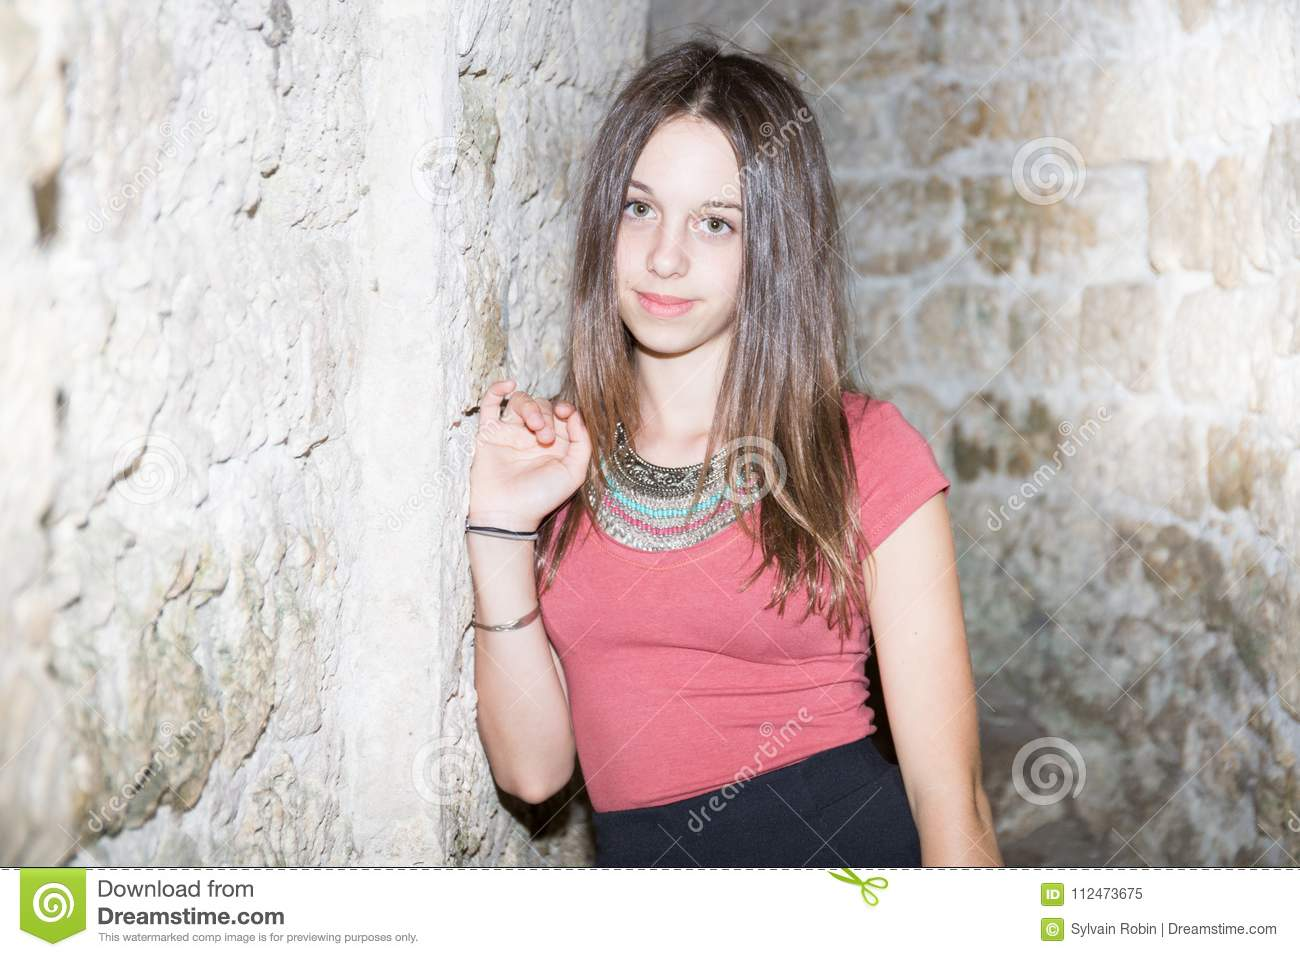 Very young girl outdoor very valuable